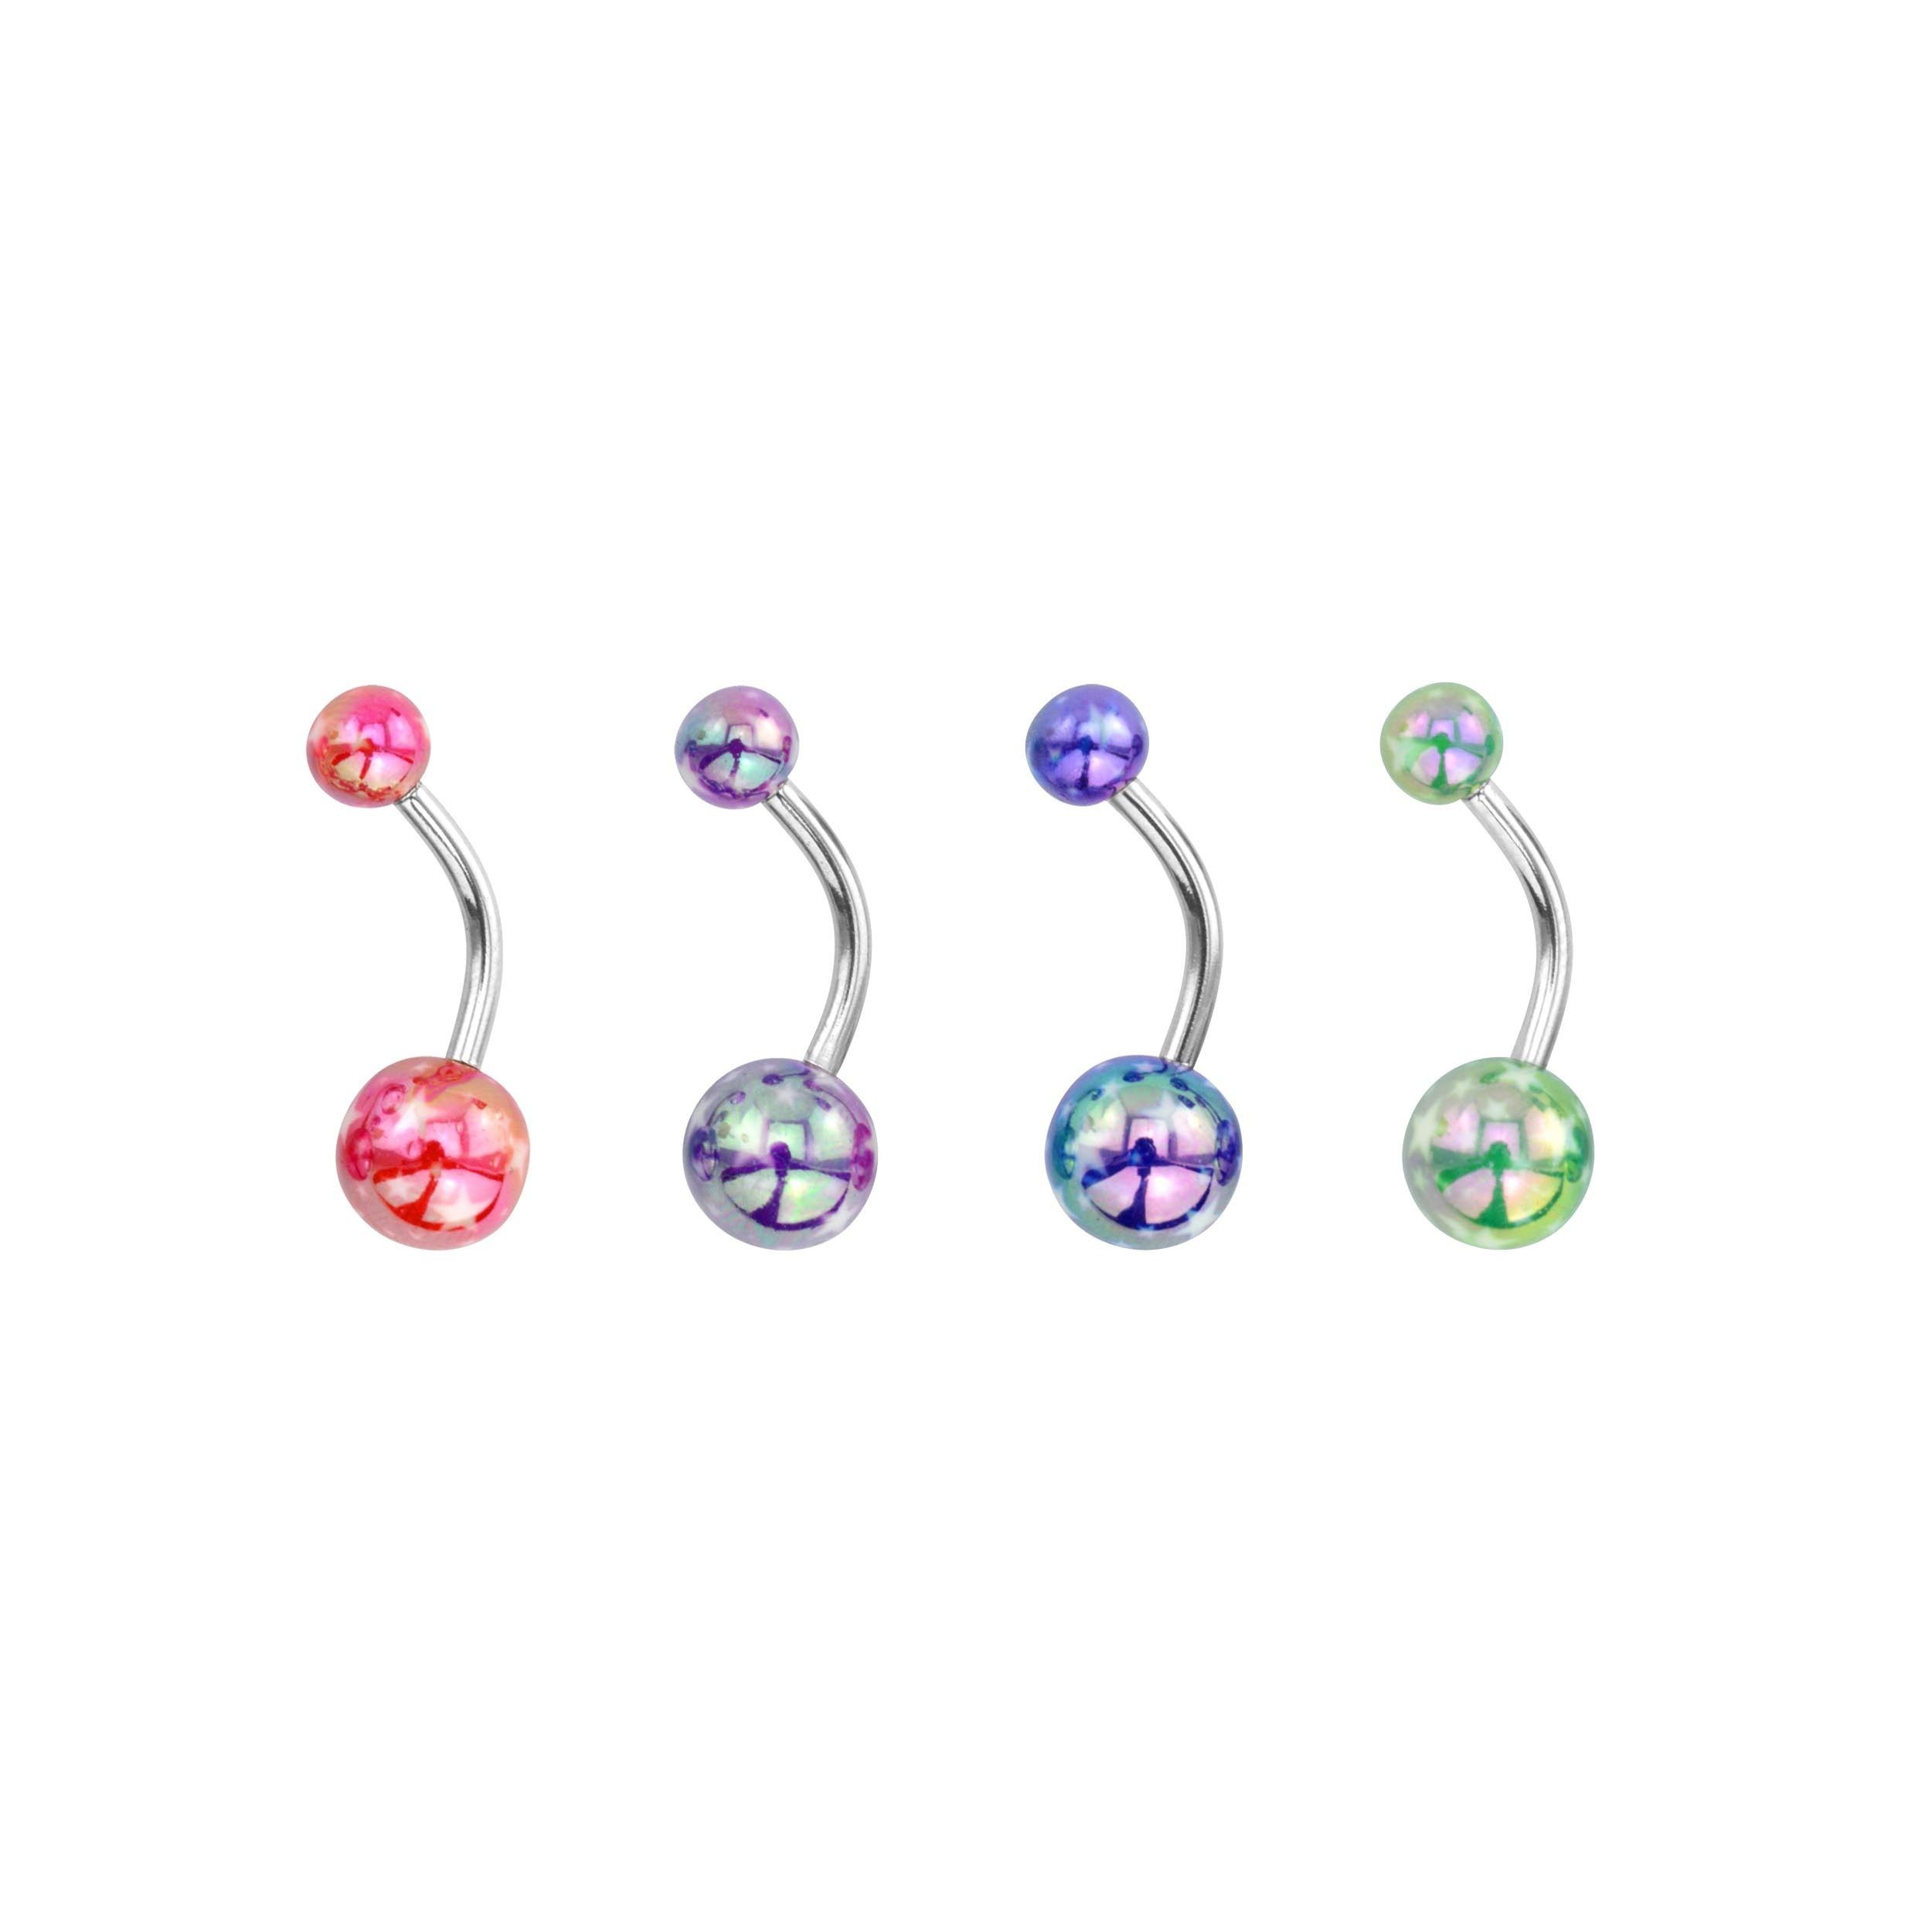 4 belly button piercing  Supreme Jewelry Iridescent Cheetah Printed Belly Ring Set of